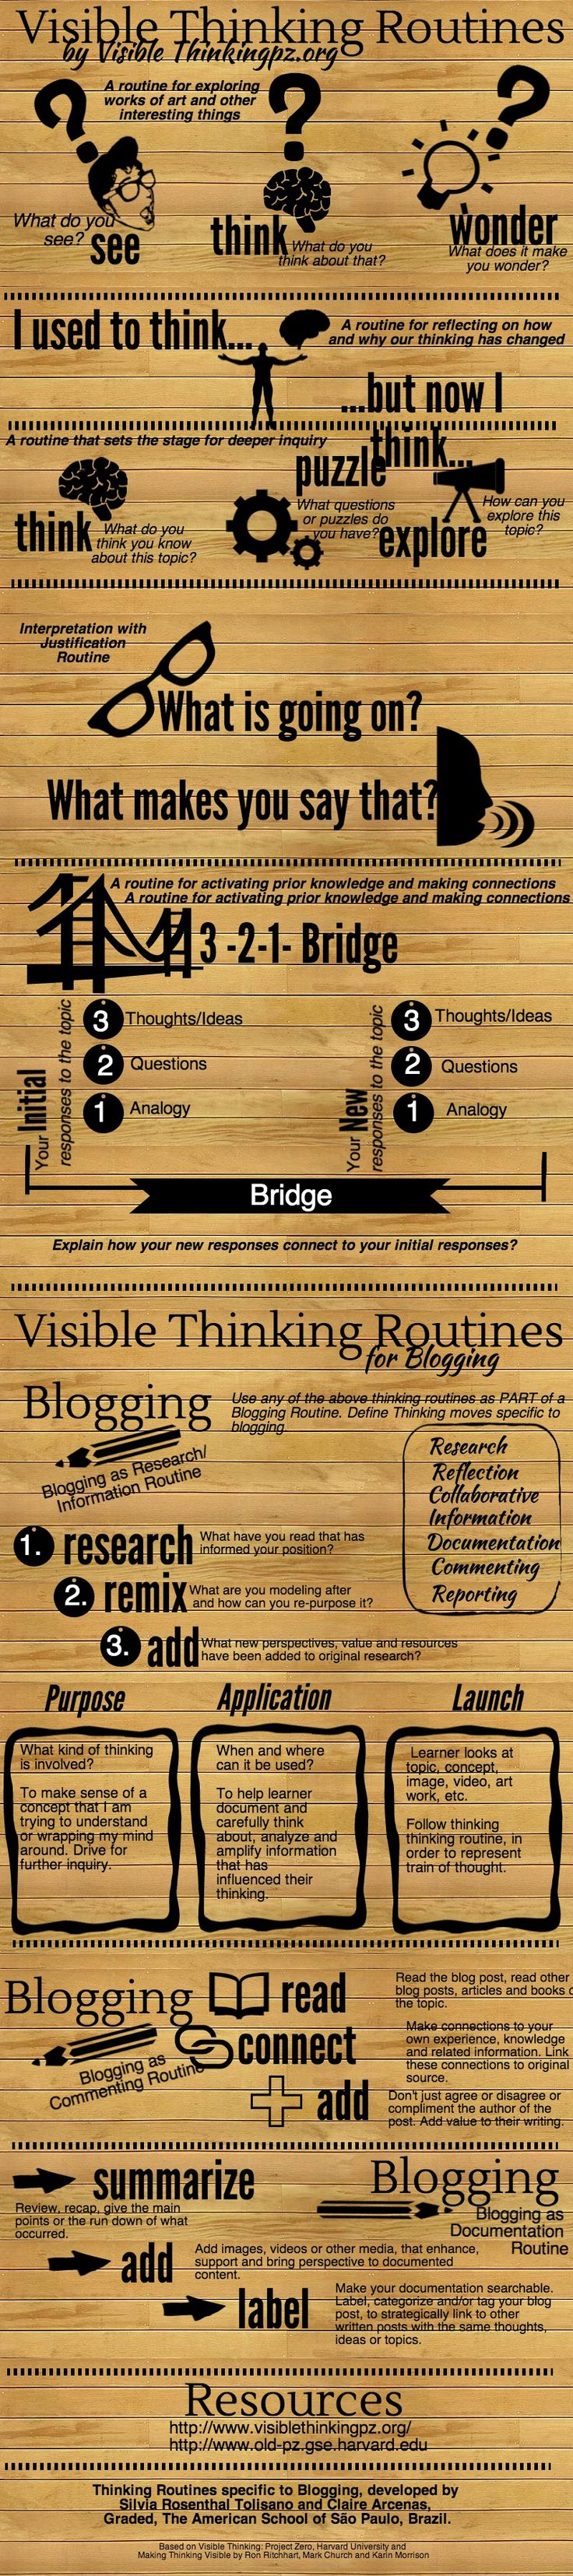 Visible Thinking, as a learning approach, makes extensive use of thinking routines in class.These routines, according to Visiviblethinkingpz...